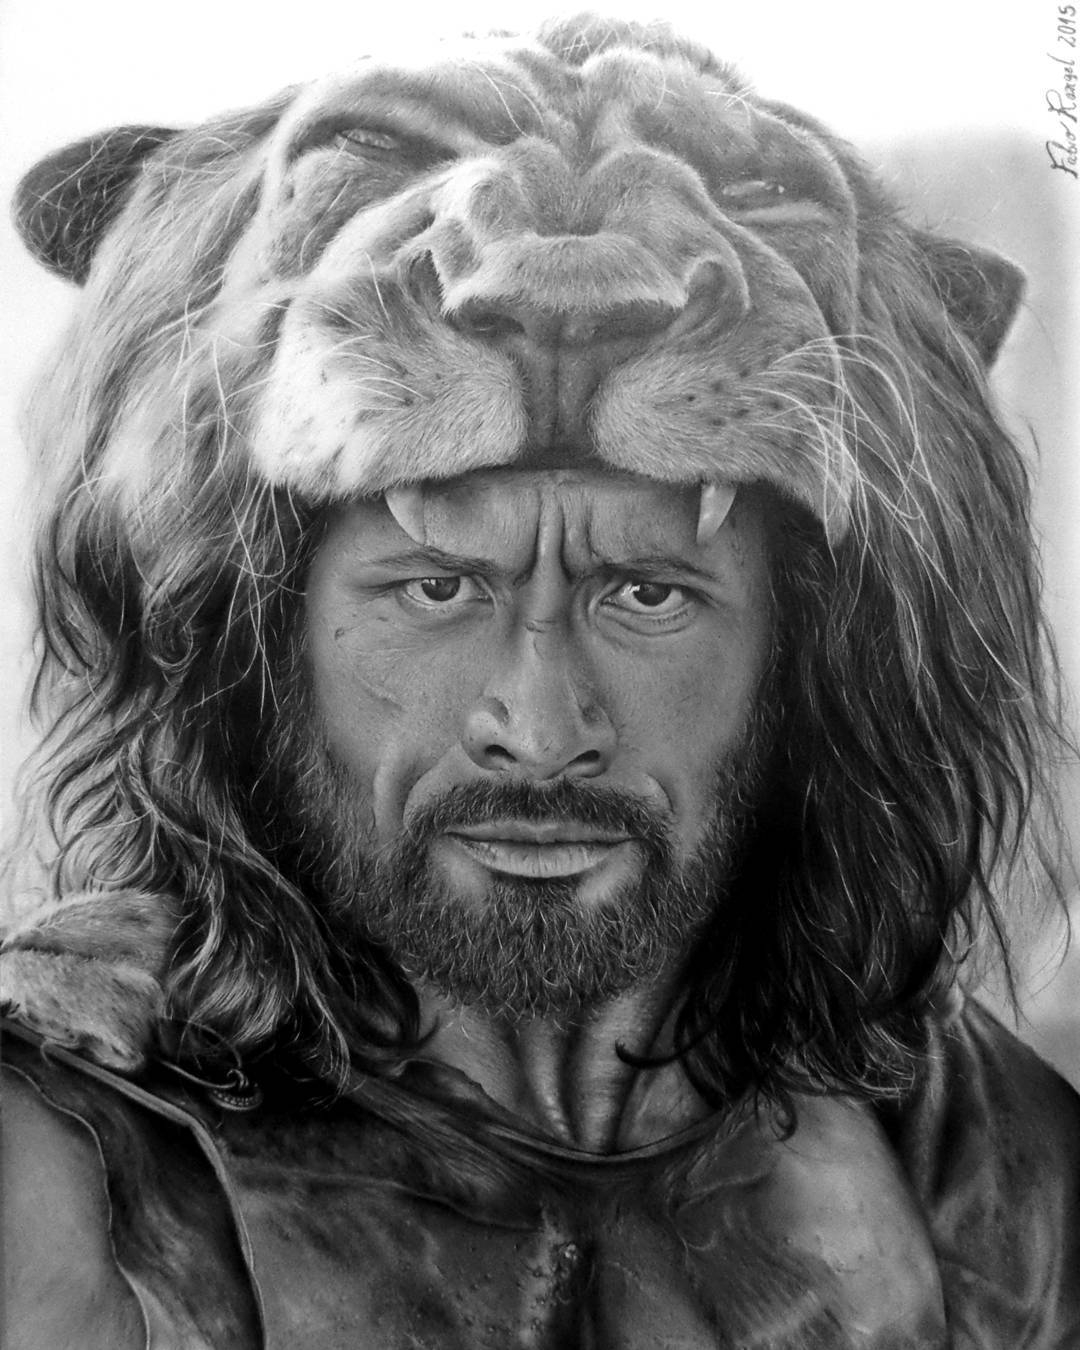 13-Hercules-Dwayne-Johnson-The-Rock-Fabio-Rangel-Drawings-of-Protagonists-from-TV-and-Movies-www-designstack-co